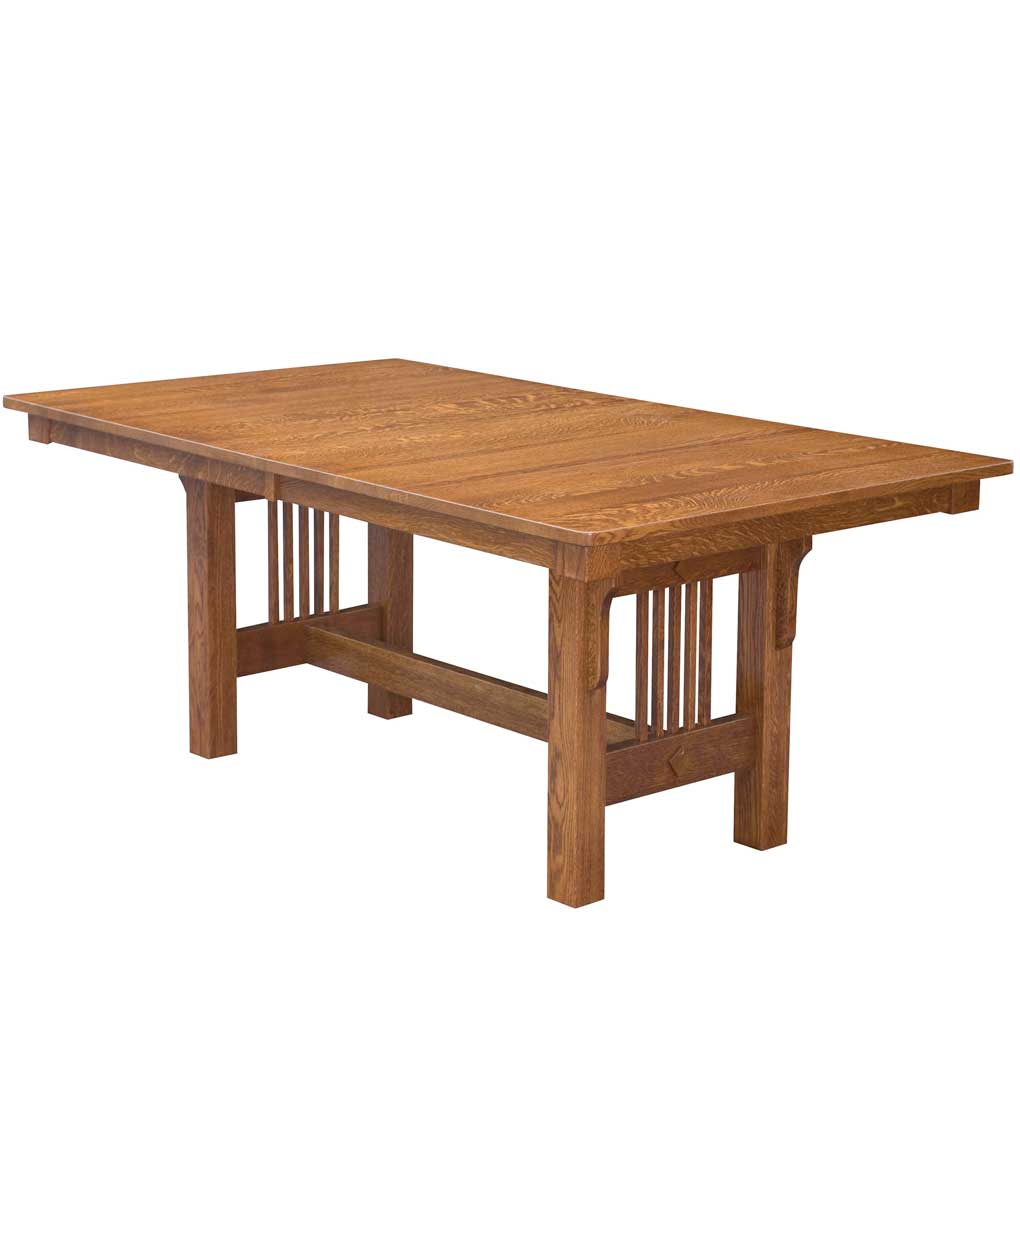 Trestle Mission Dining Table – Amish Direct Furniture With Regard To Most Recently Released Nerida Trestle Dining Tables (Photo 3 of 15)